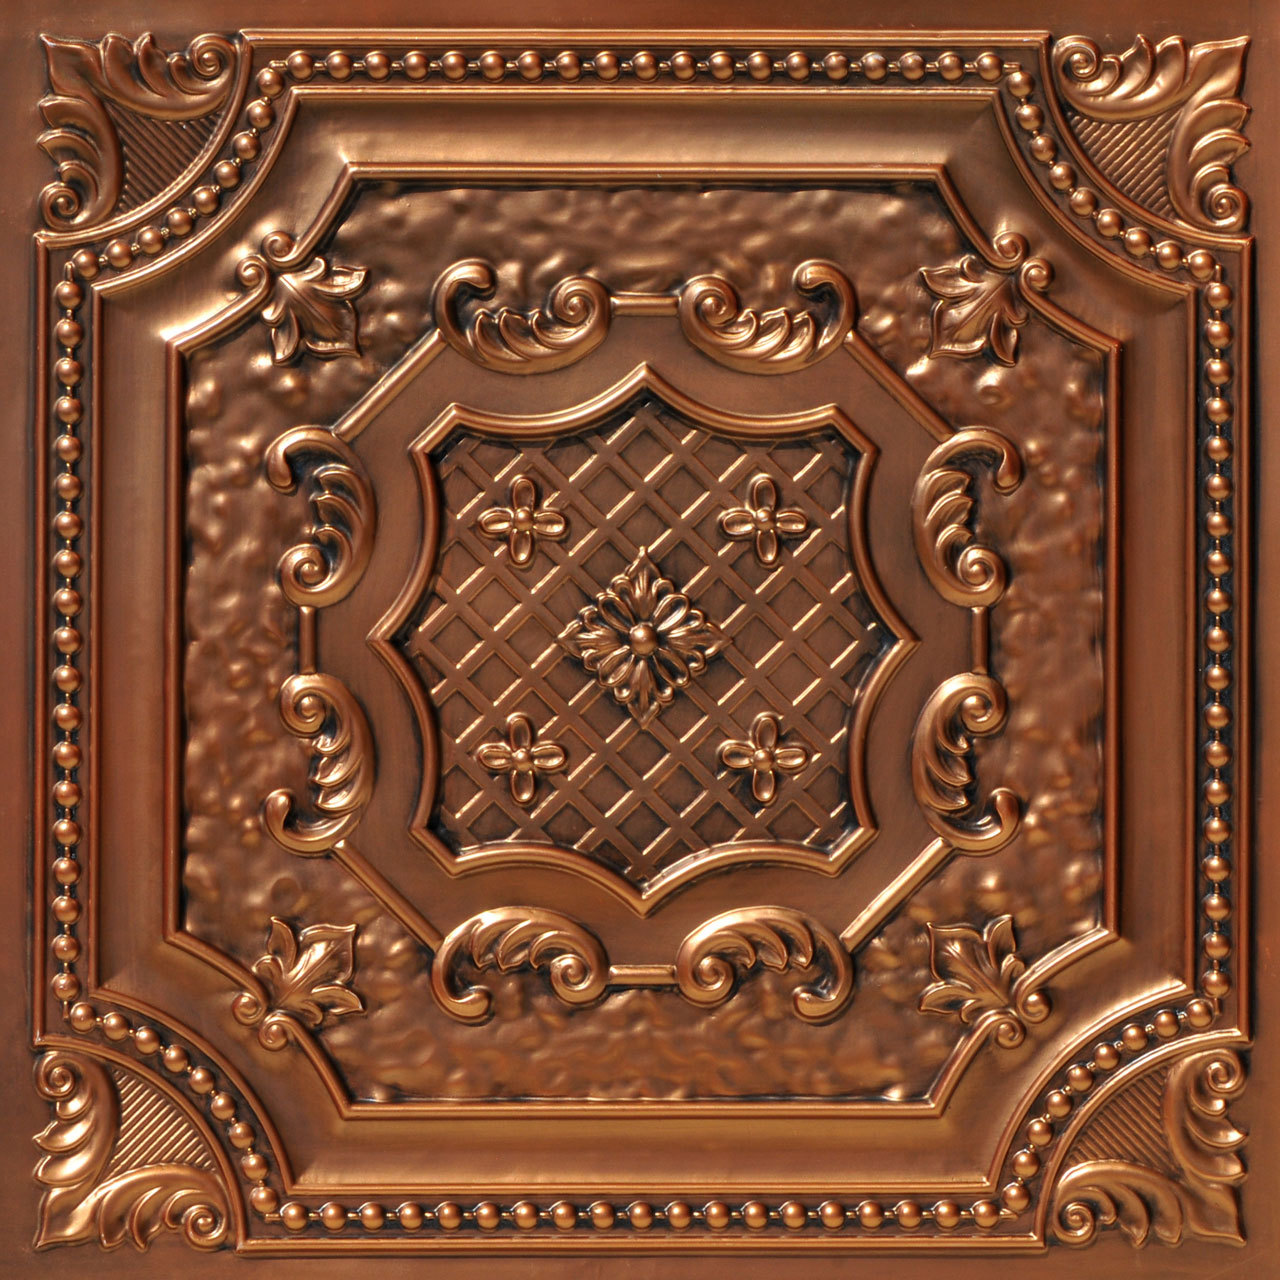 3d Antique Copper ceiling tile made from PVC was used as a floor tile in photography.